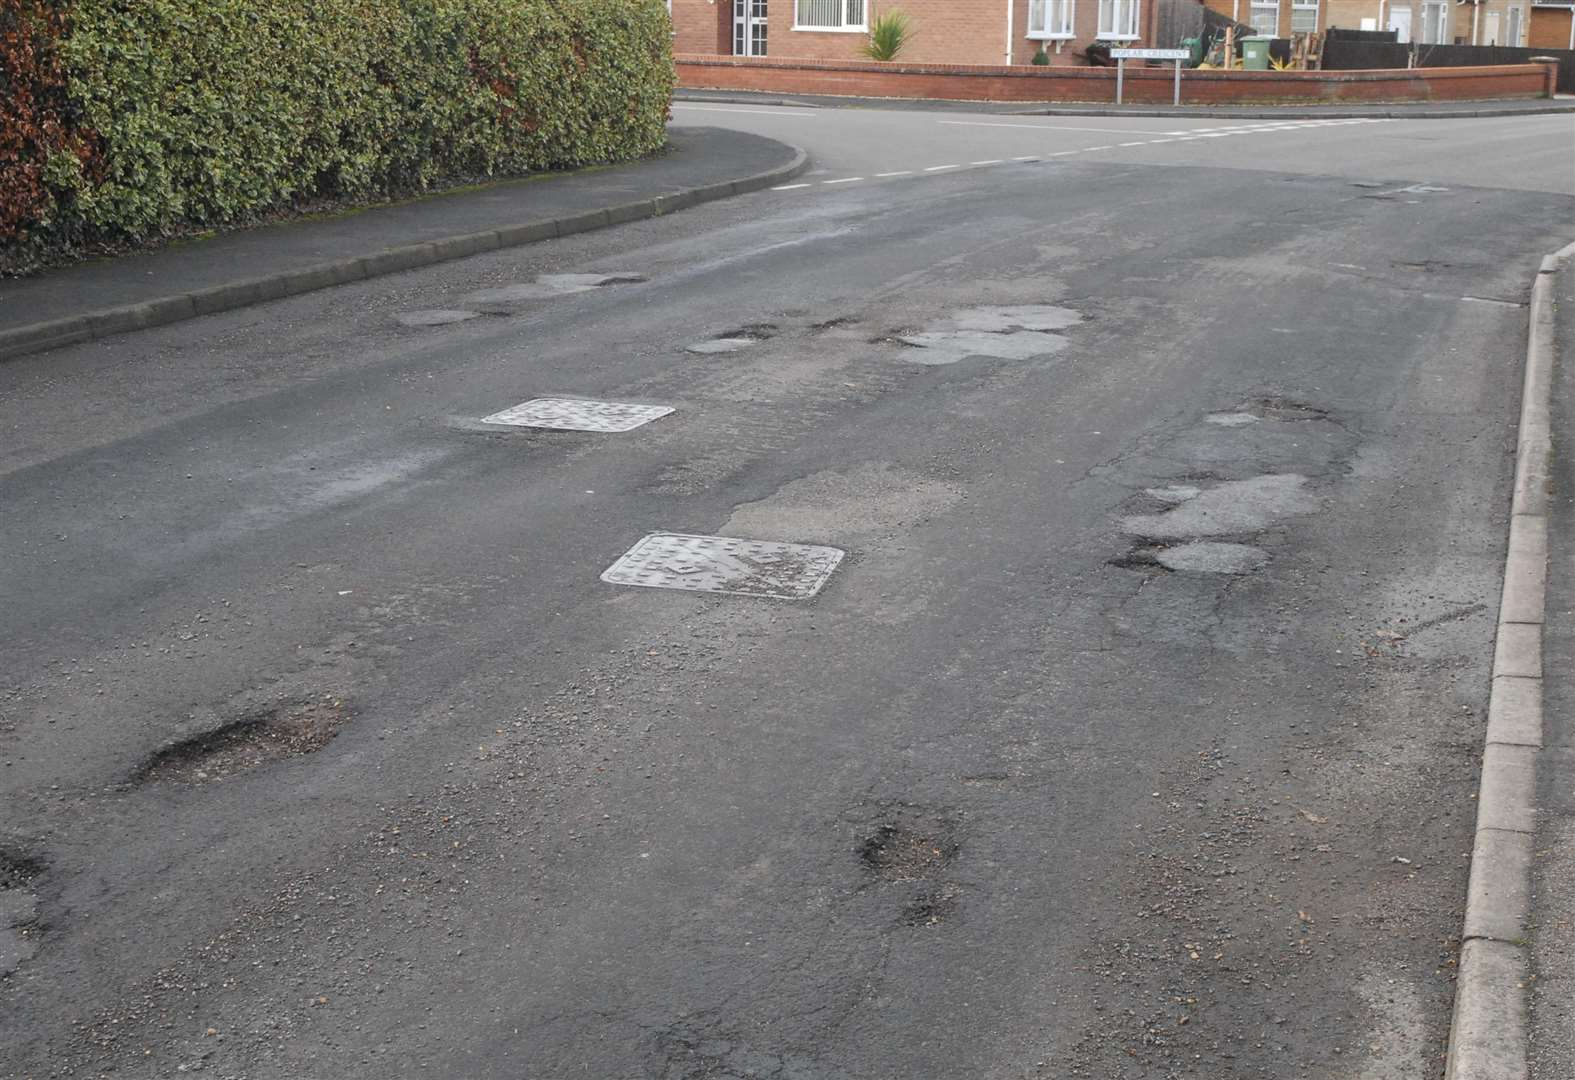 Highways bosses pledge to increase pothole repairs in Suffolk